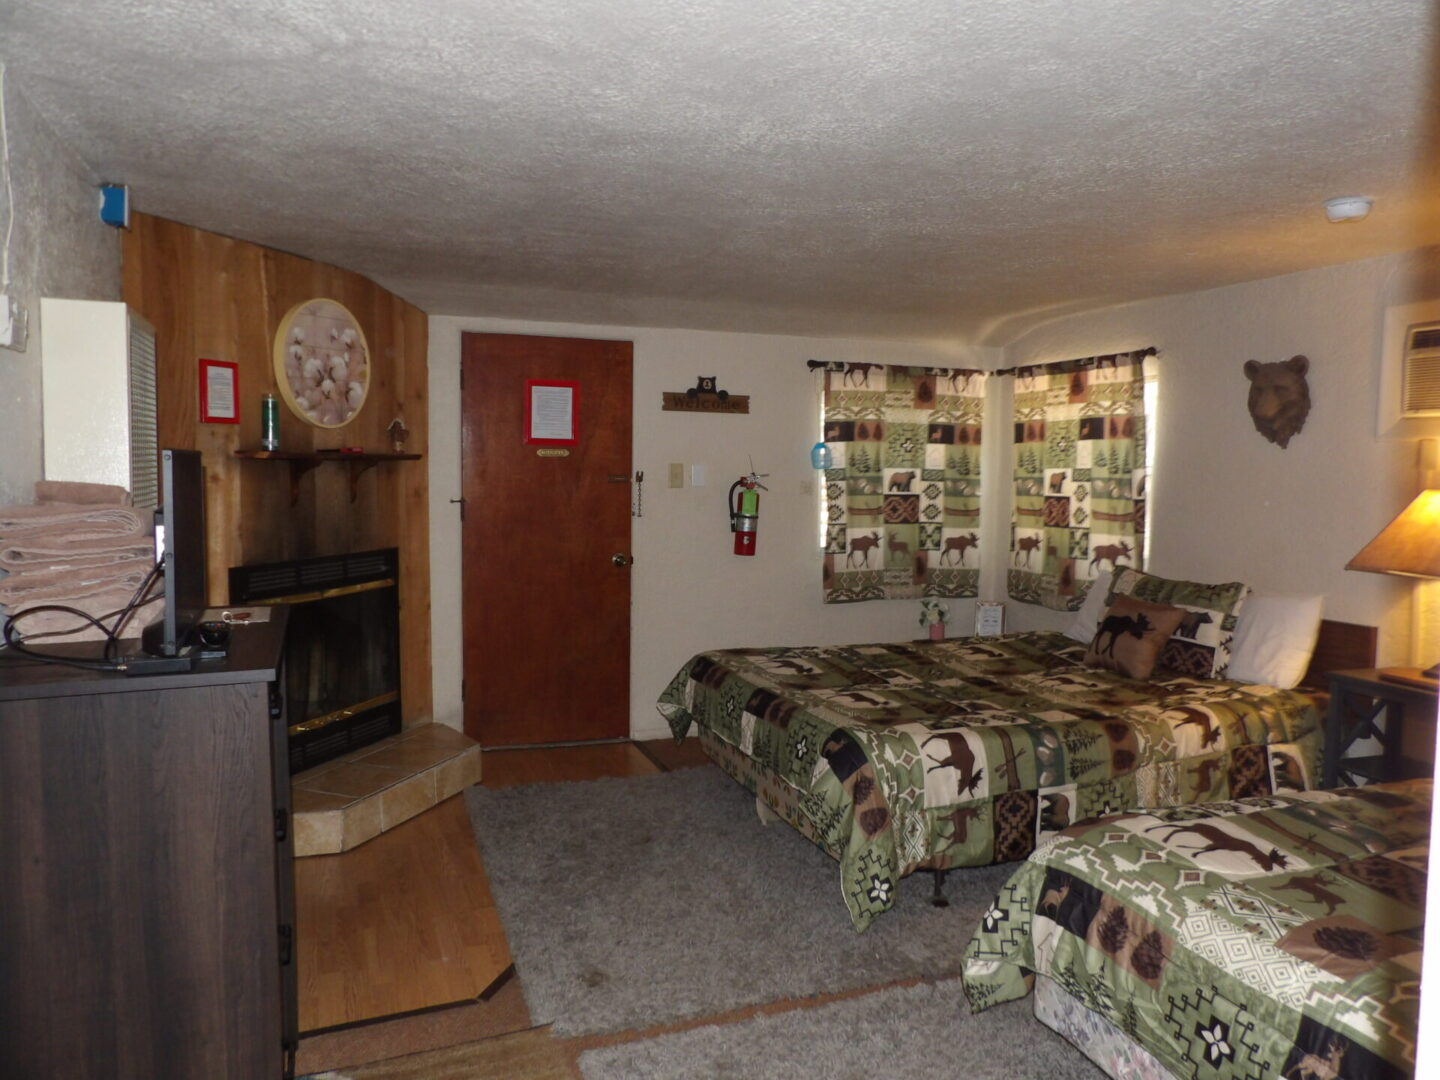 bedroom with two beds and a TV